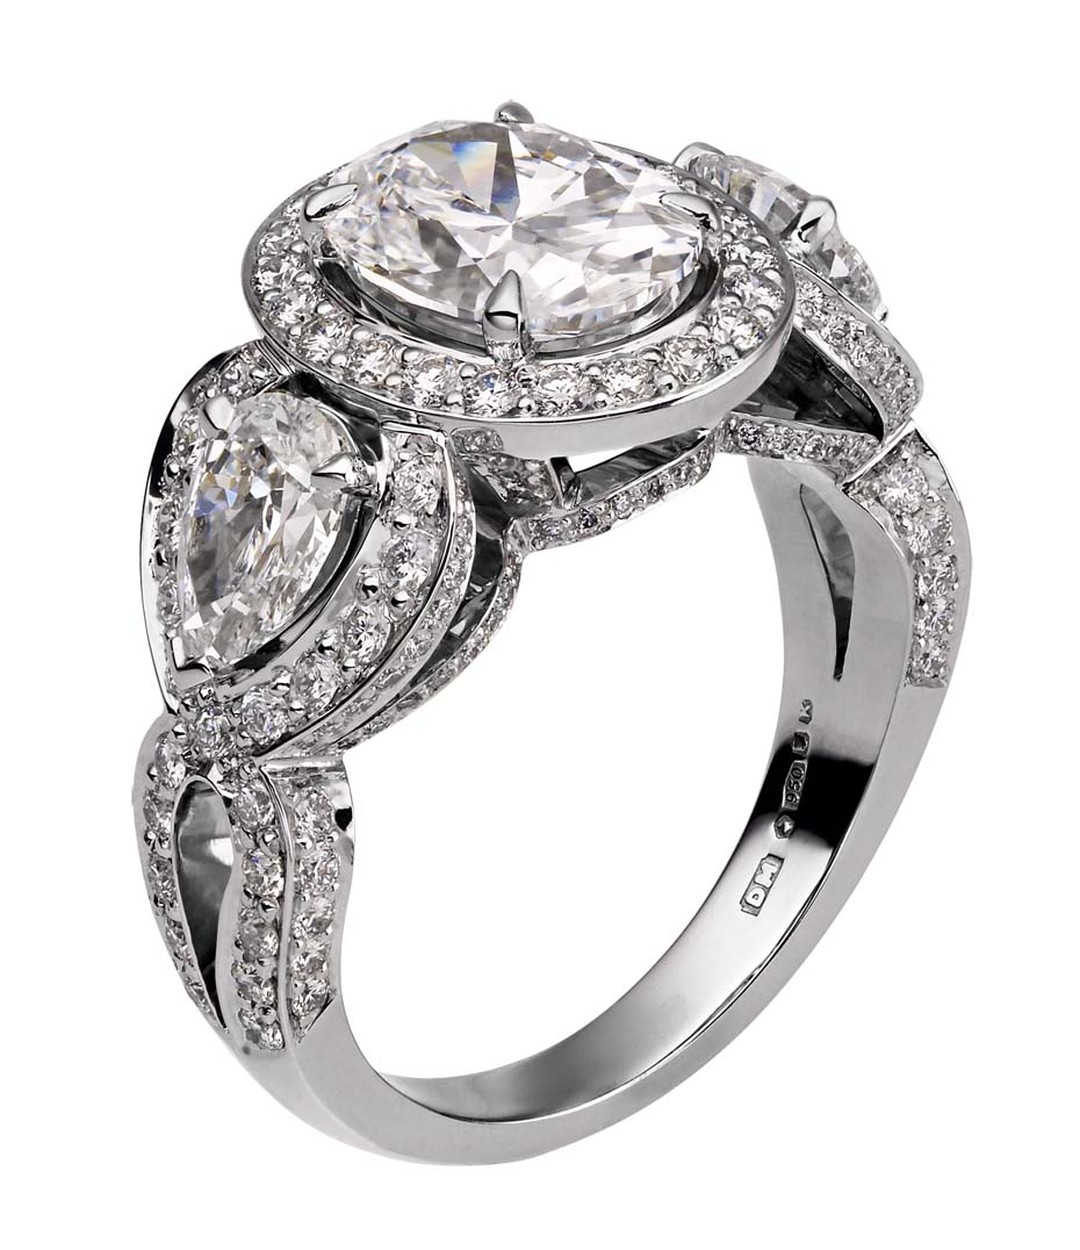 A 2 carat diamond ring, like this David Marshall 2.05ct oval-cut diamond ring, will cost almost four times as much as a 1 carat diamond ring due to the fact that larger diamonds are rarer, especially when they are of such high quality.